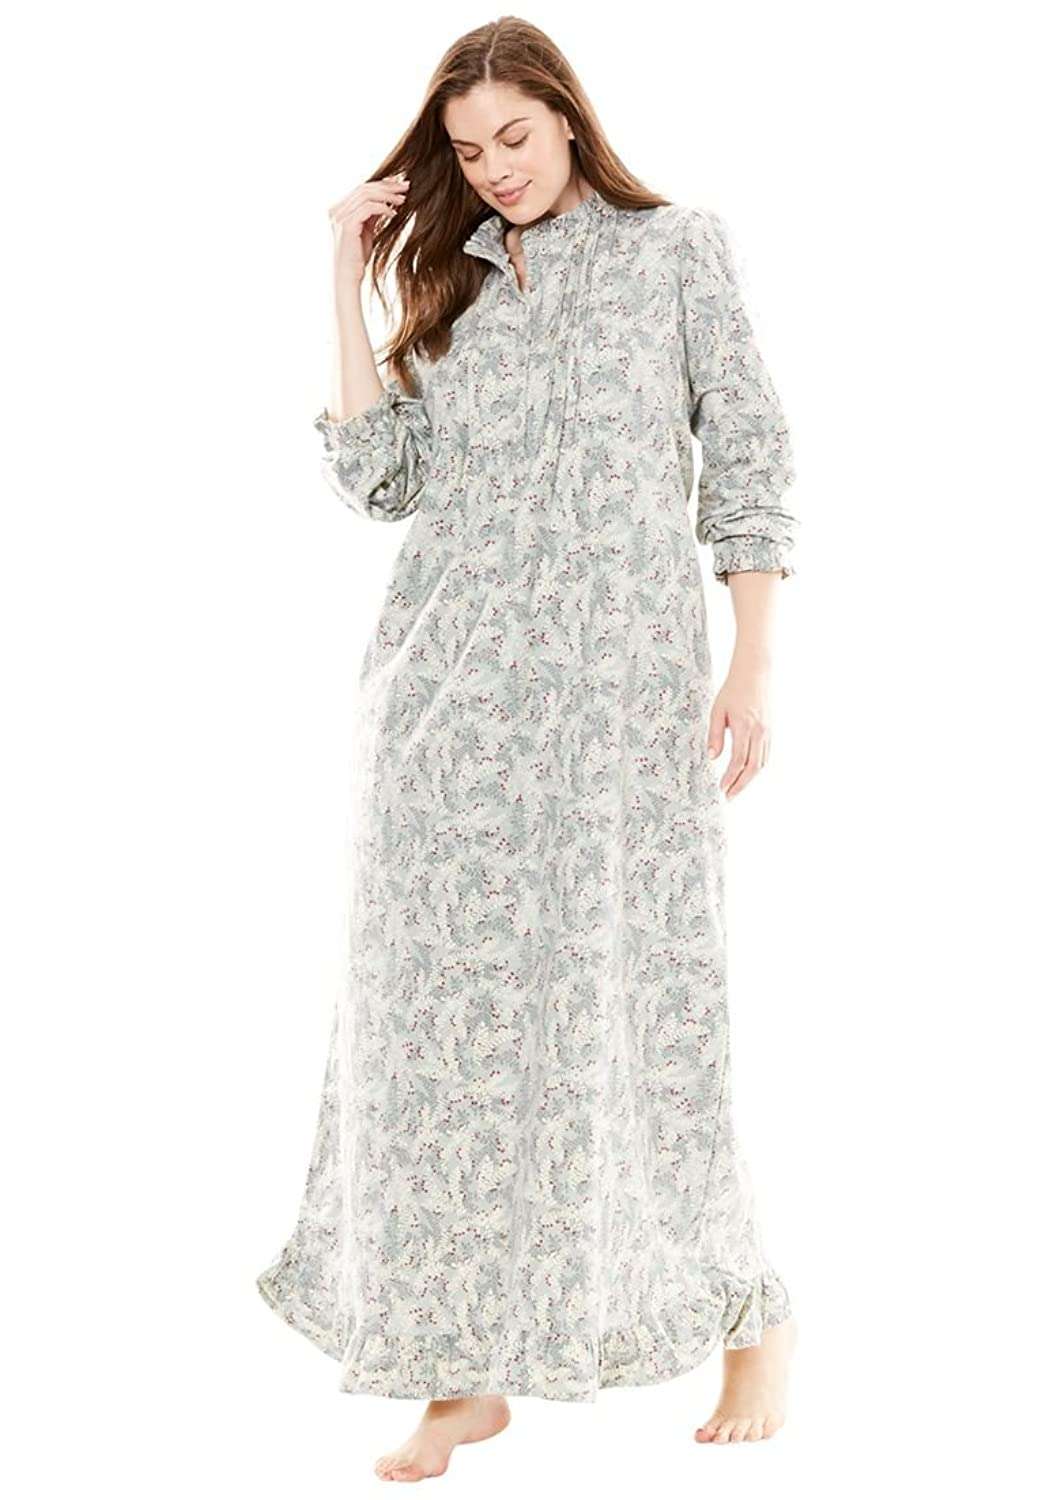 Plus Size Flannel Gowns Wwwtopsimagescom